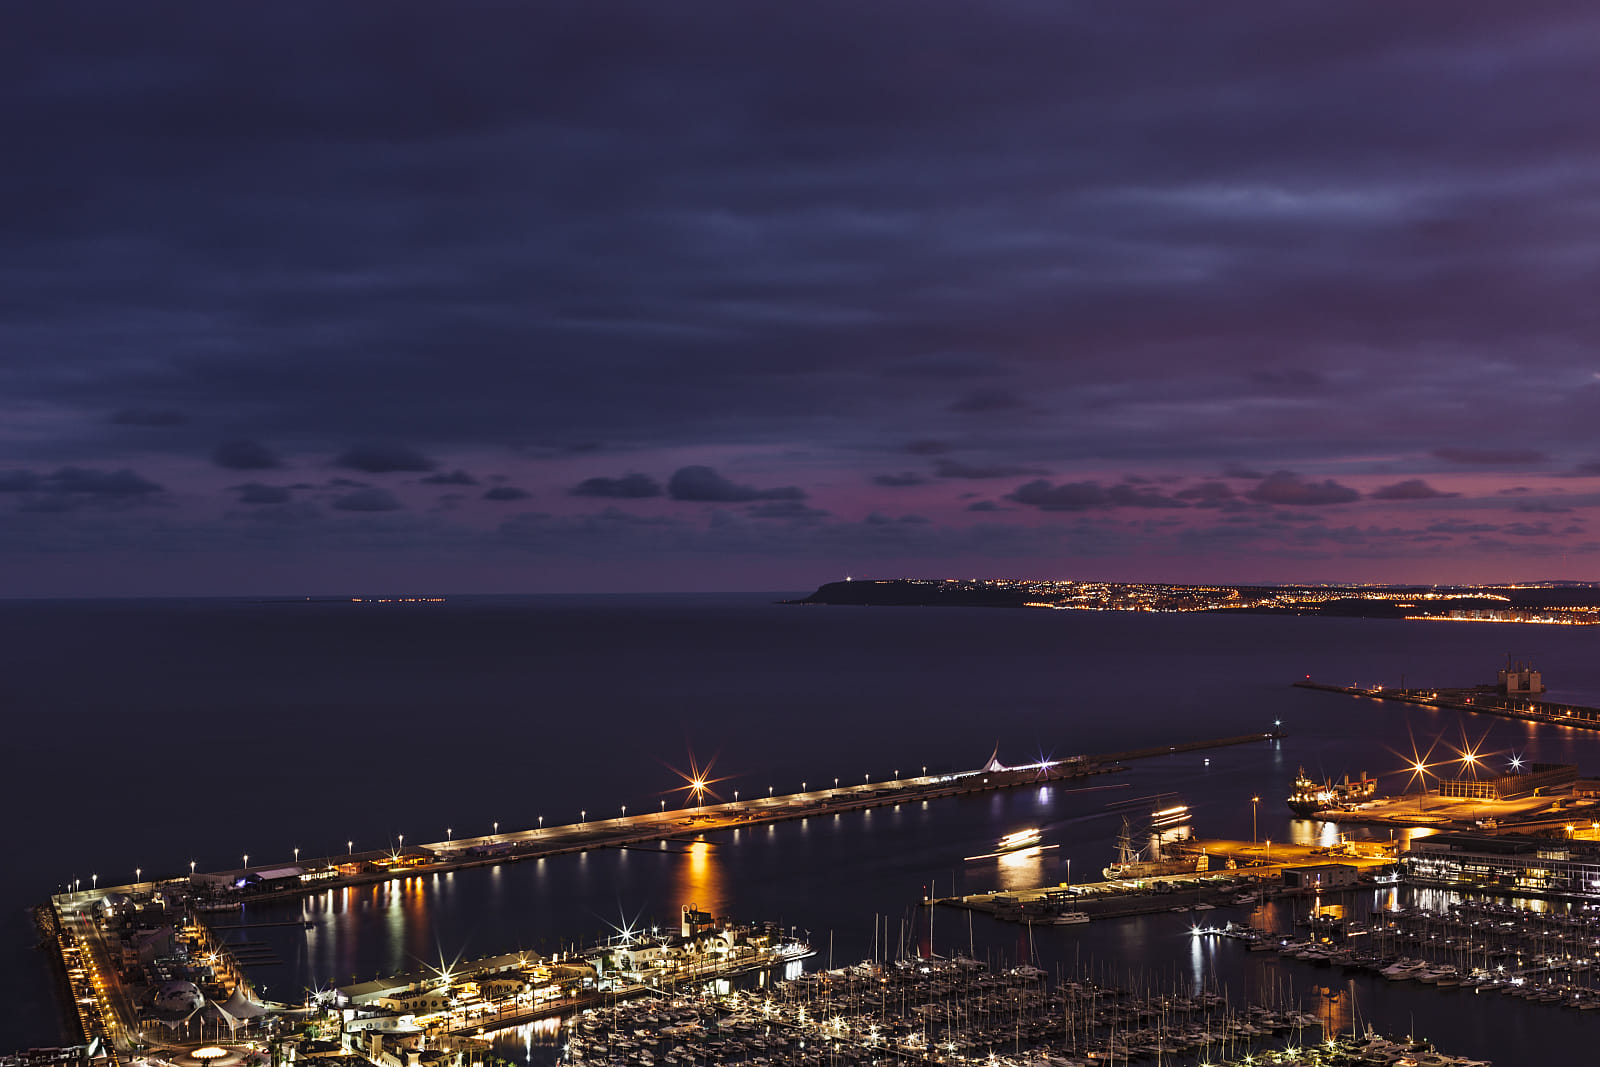 Alicante after sunset